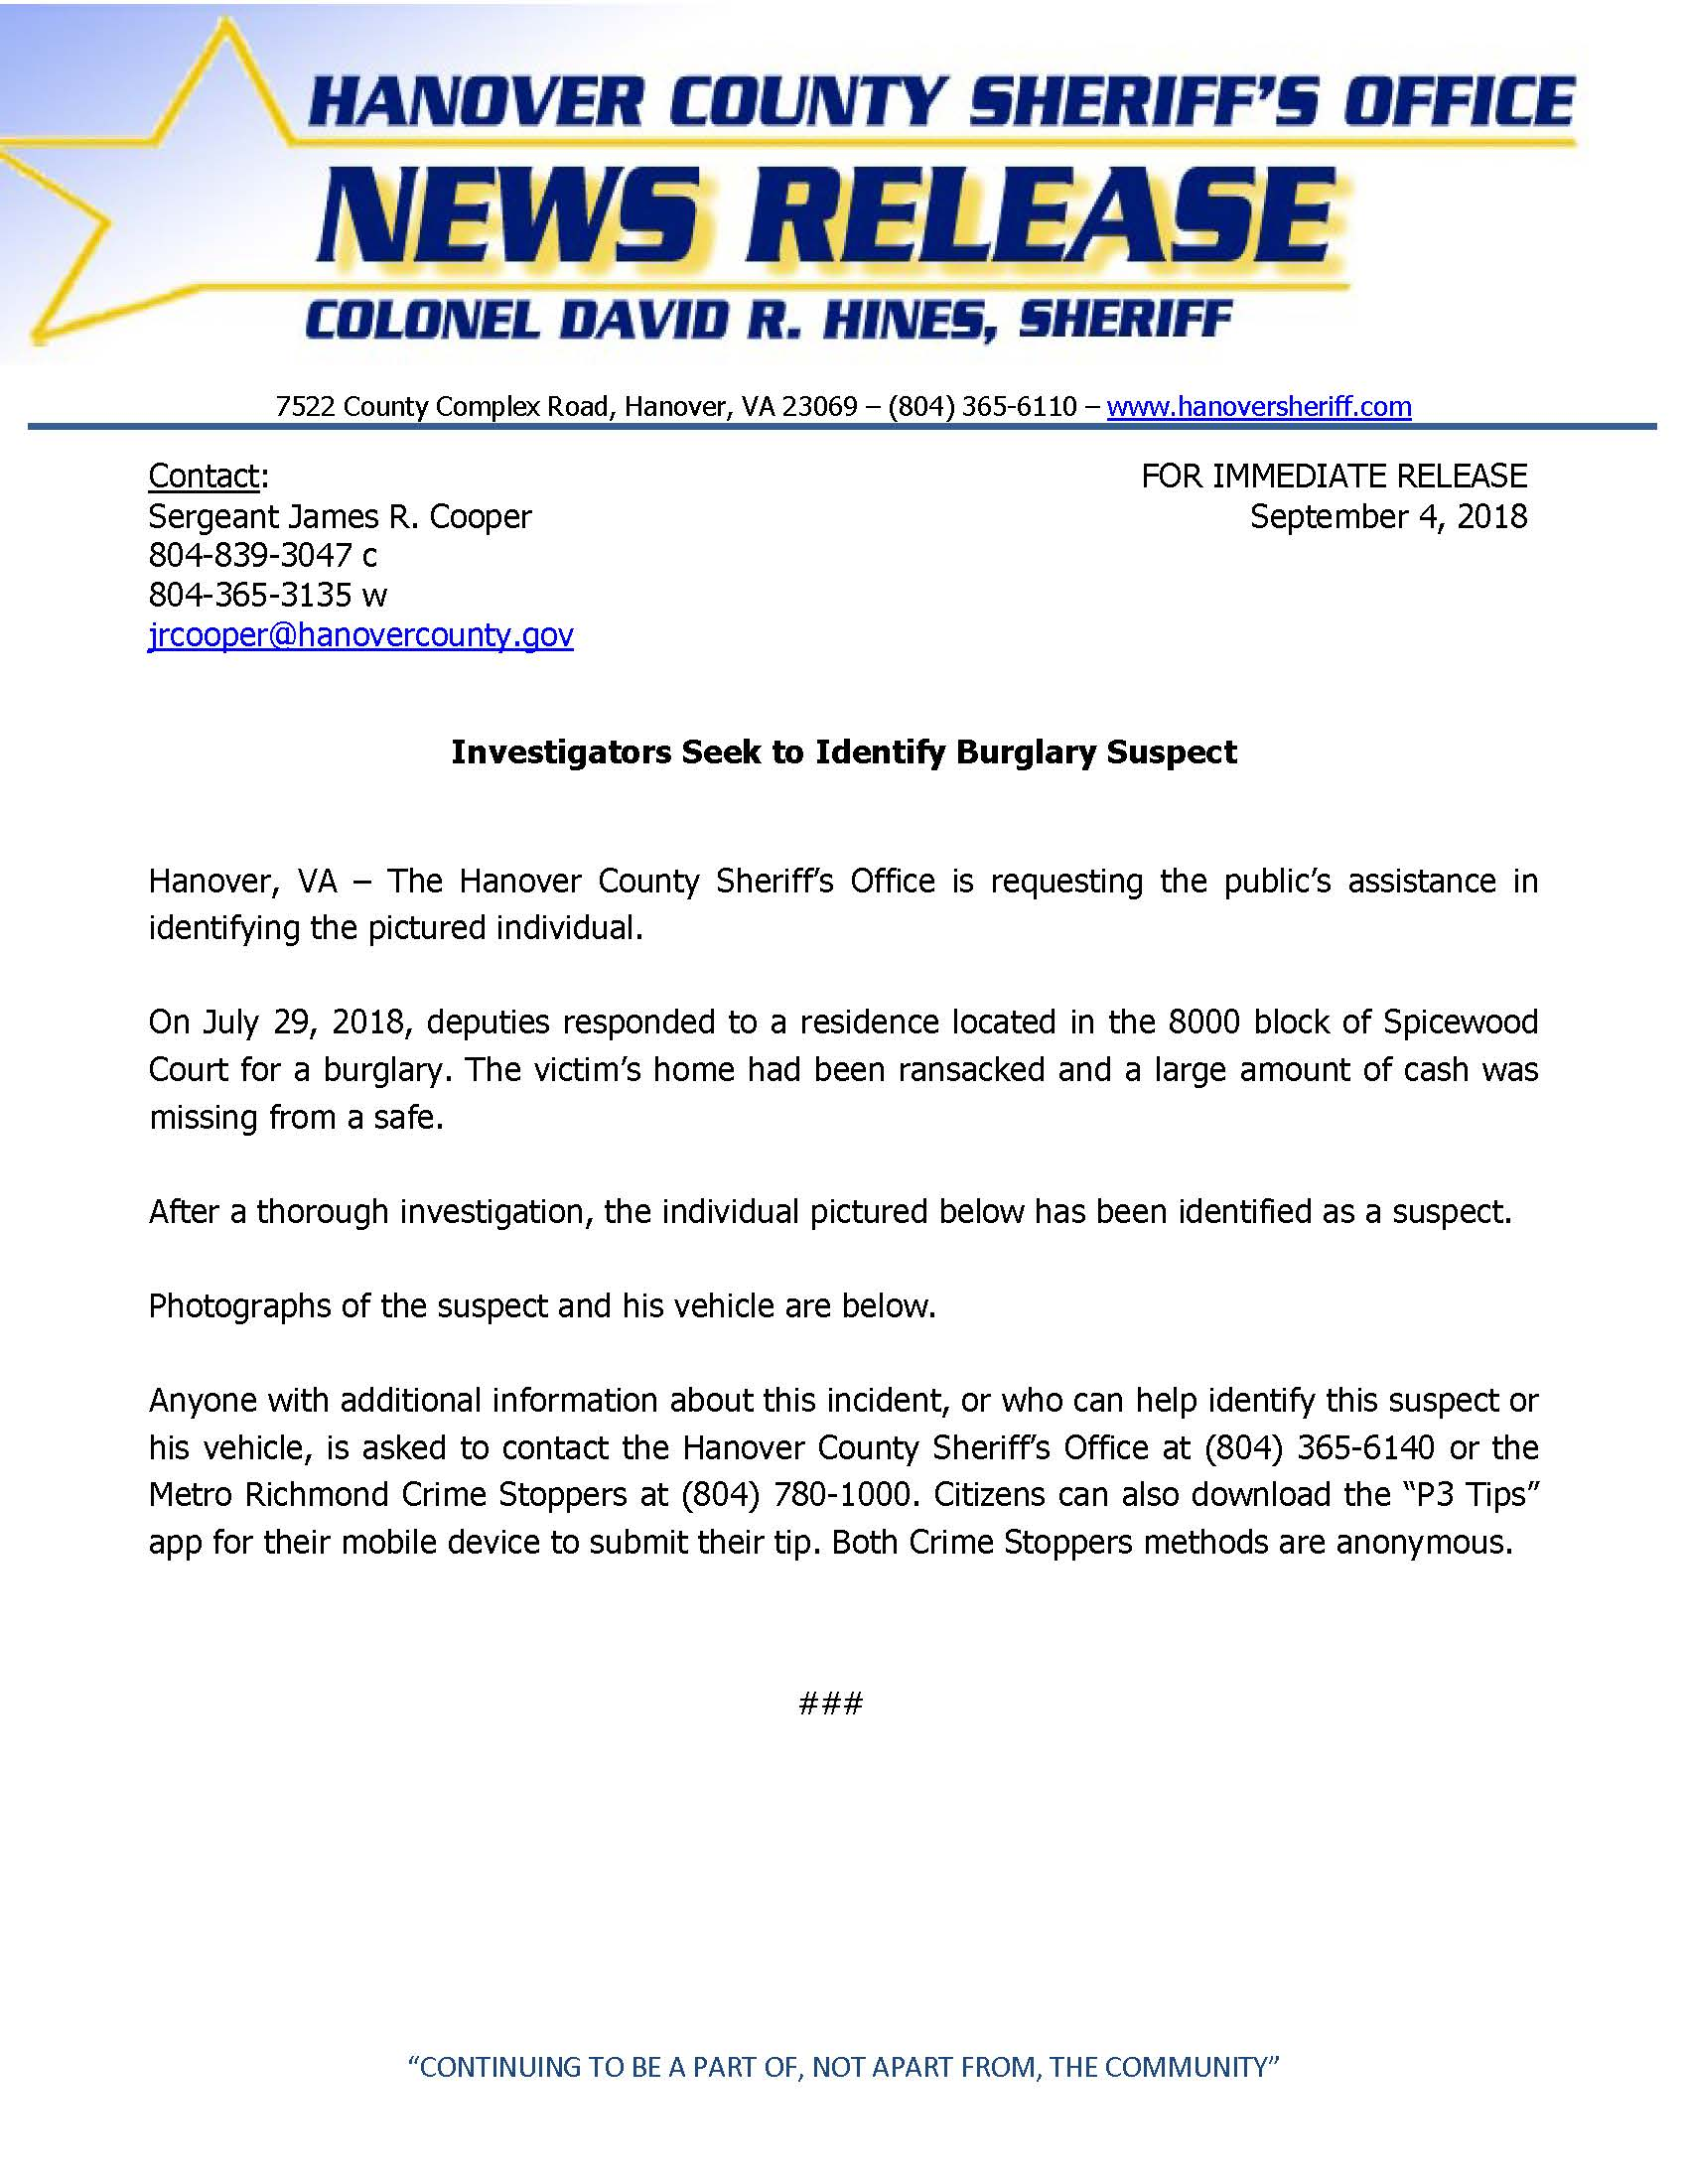 HCSO - Investigators Seek to Identify Burglary Suspect - September 4, 2018_Page_1